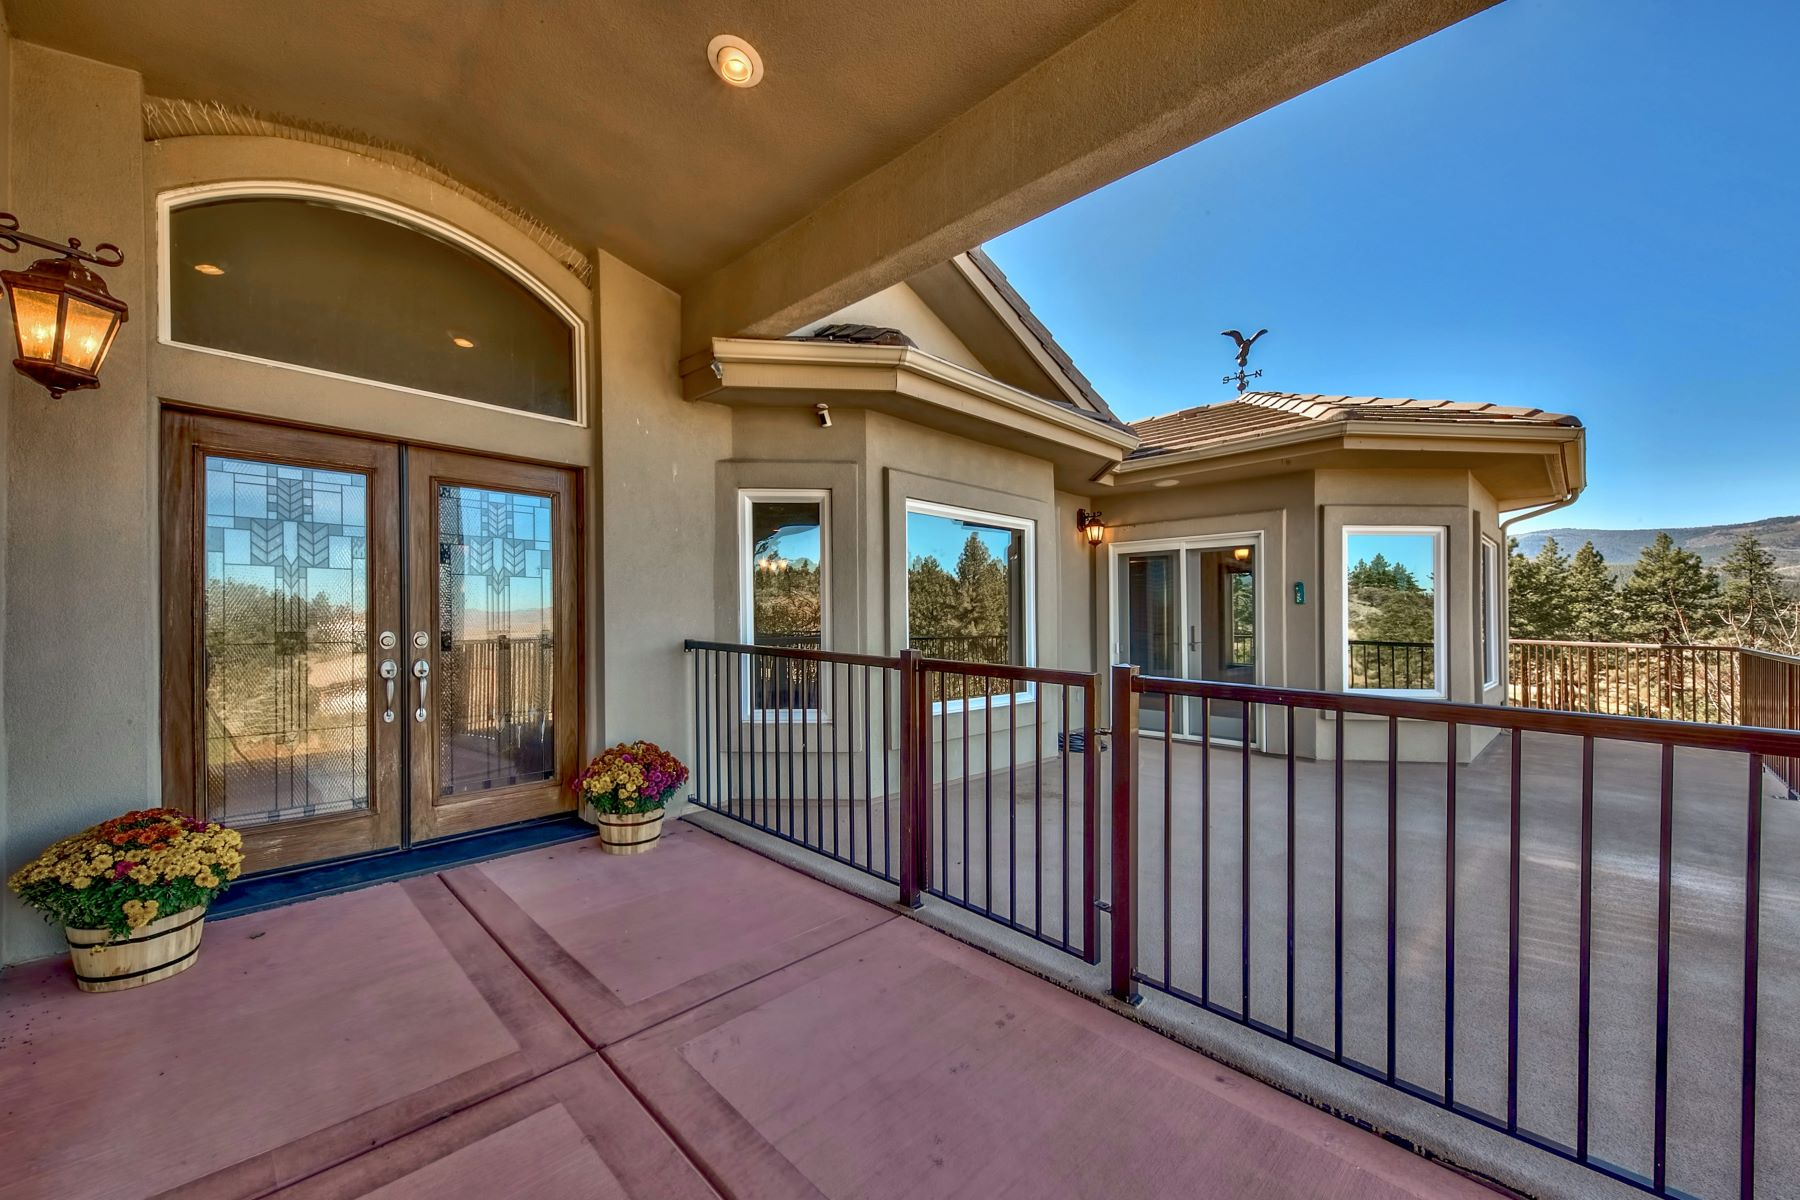 Additional photo for property listing at 14700 Sto Lat Lane, Reno, NV 14700 Sto Lat Lane Reno, Nevada 89506 United States